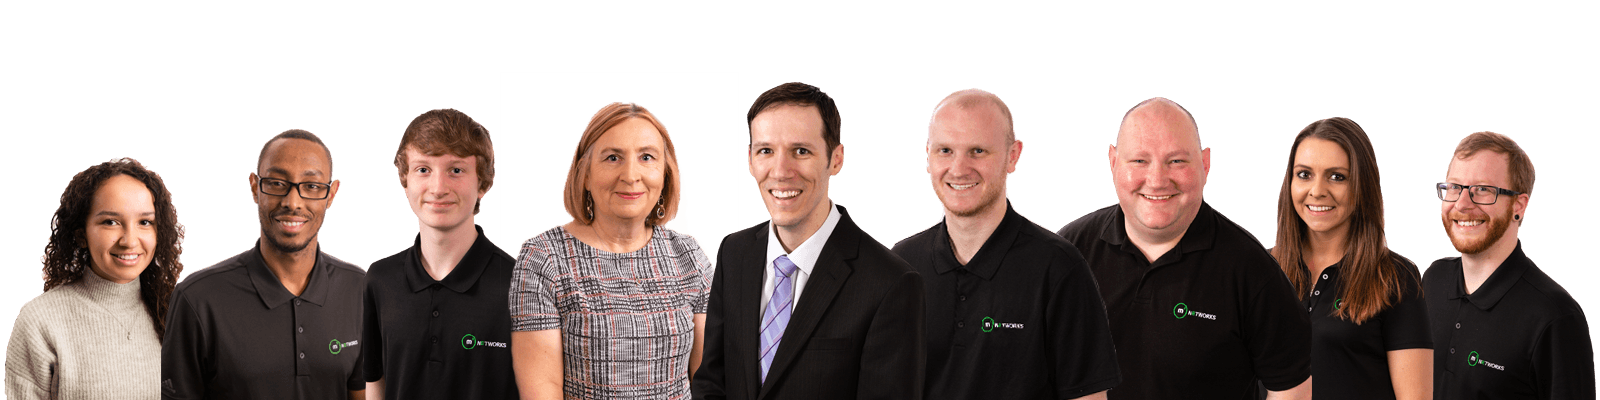 m3 Networks IT Support and Cyber Security Team, based in Perth, Scotland